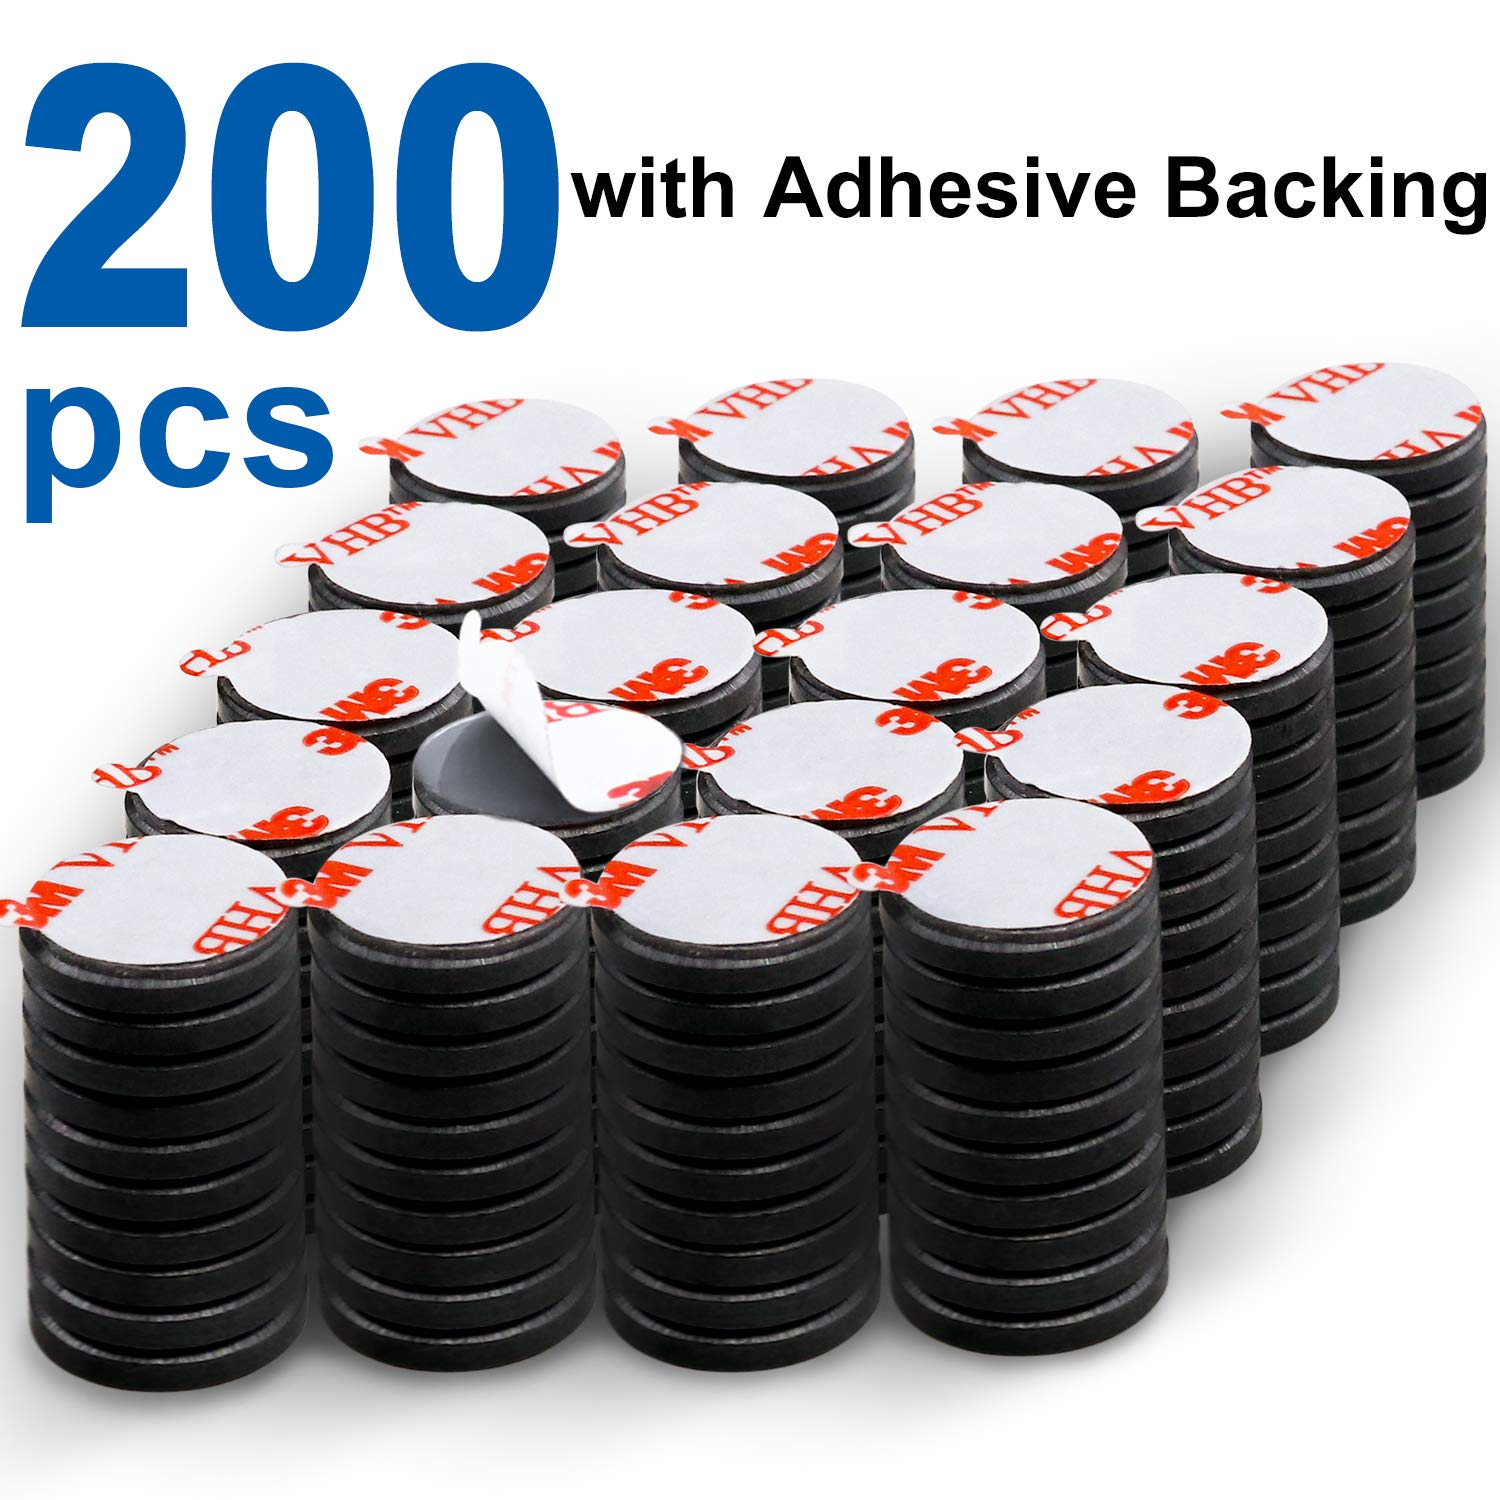 DIYMAG Powerful Ceramic Disc Magnets 200 Packs with Double-Sided Adhesive, Powerful Ceramic Industrial Magnets. Perfect for Fridge, DIY, Building, Scientific, Craft, and Office Magnets